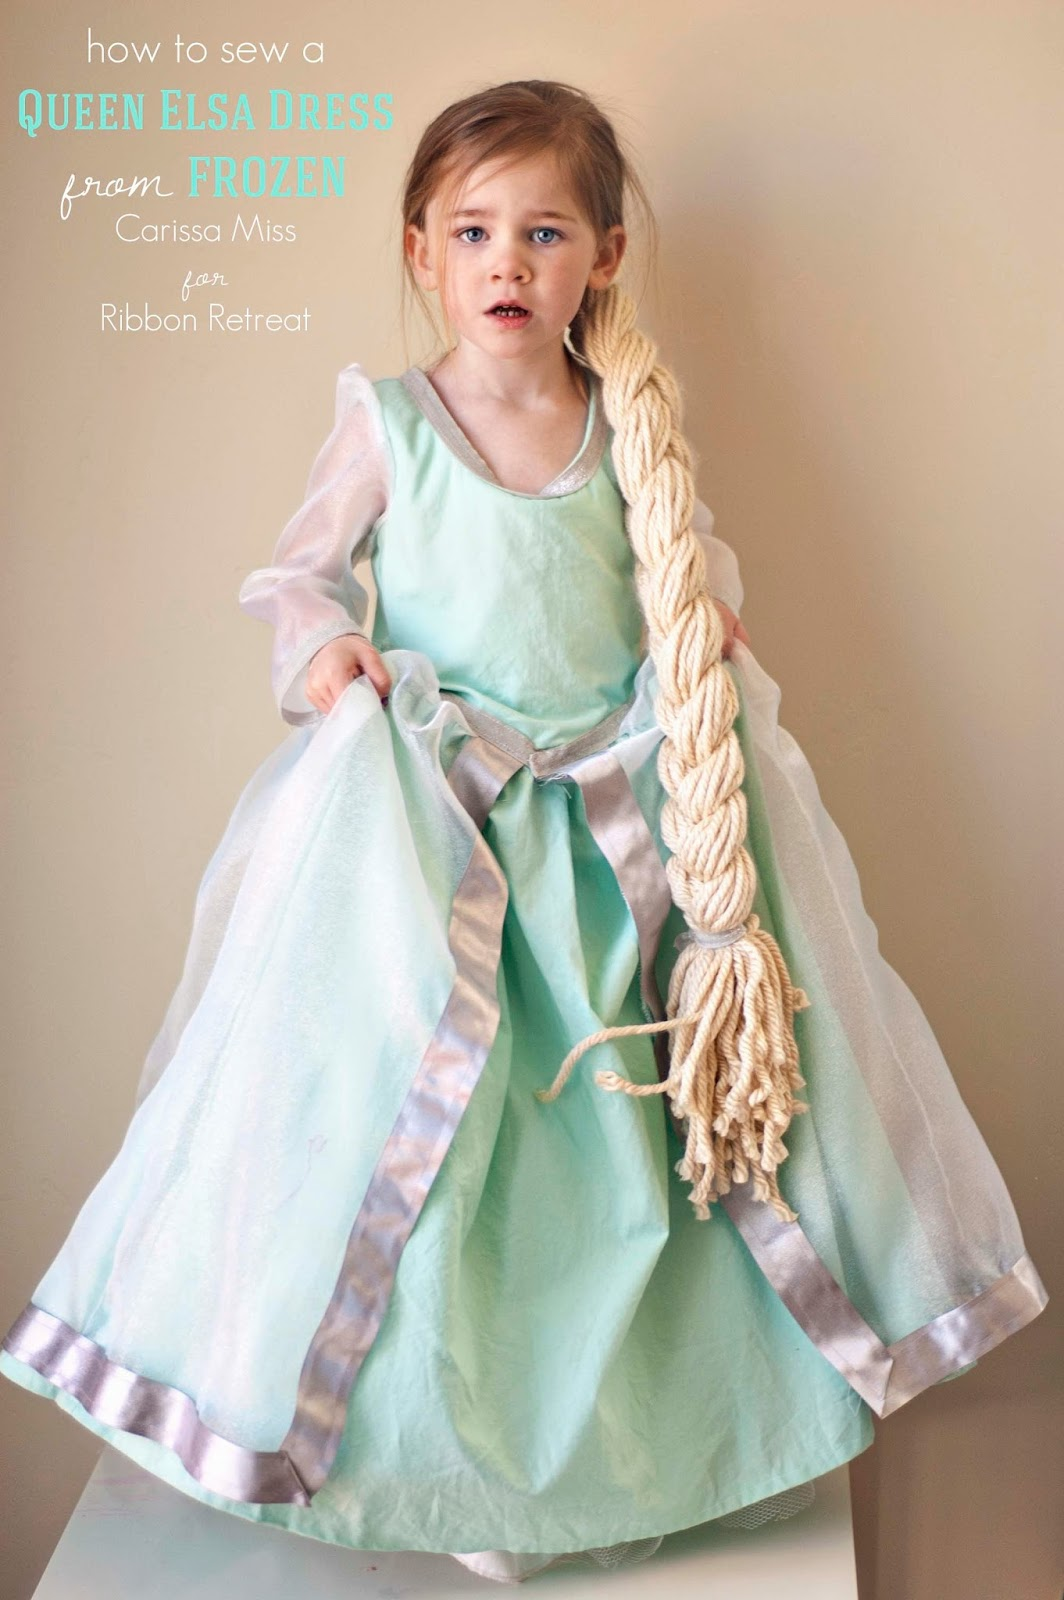 Carissa Miss: How to sew a Disney Frozen Elsa Dress